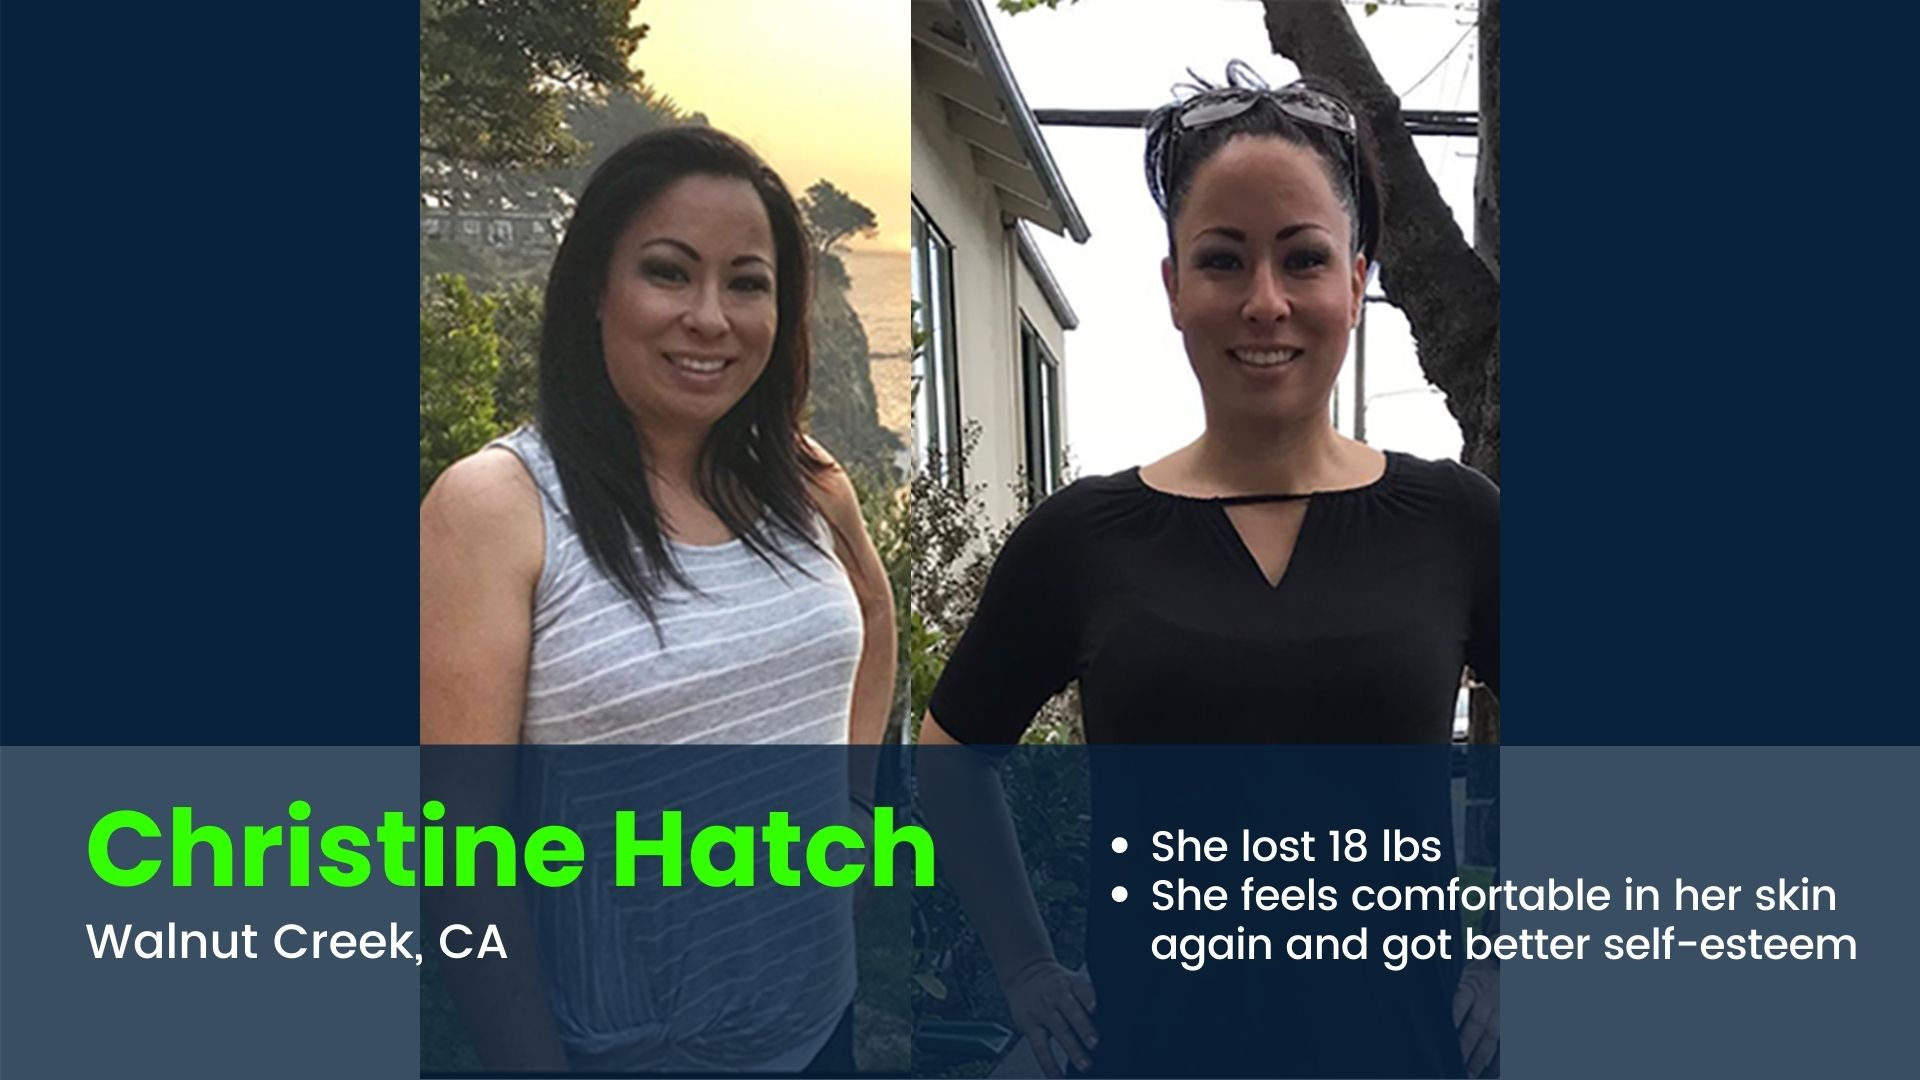 Woman loses 18 lbs with personal trainer in Walnut Creek